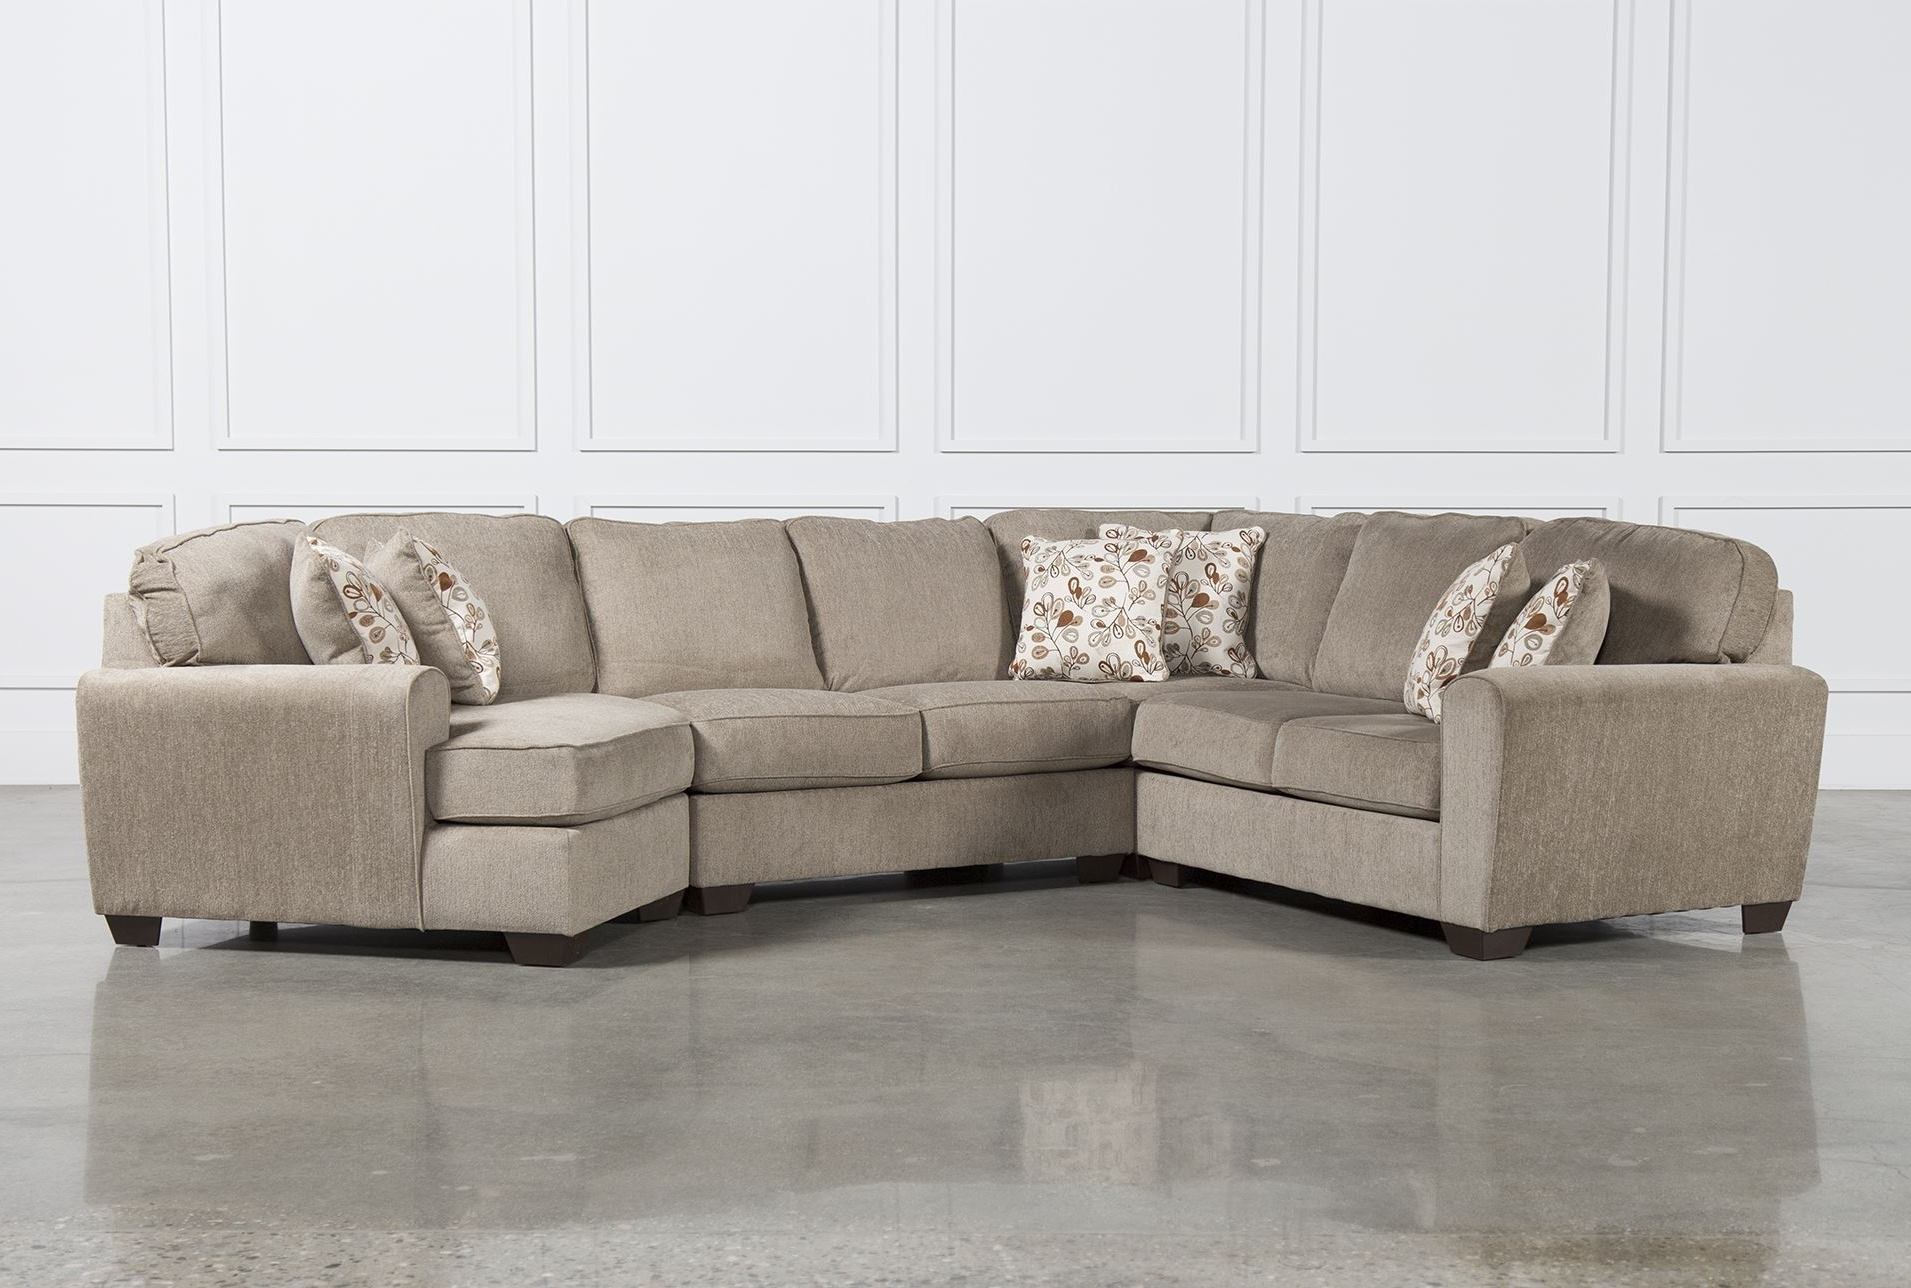 Popular Patola Park 4 Piece Sectional W Raf Cuddler Living Spaces In Sofa Intended For Living Spaces Sectional Sofas (View 14 of 20)